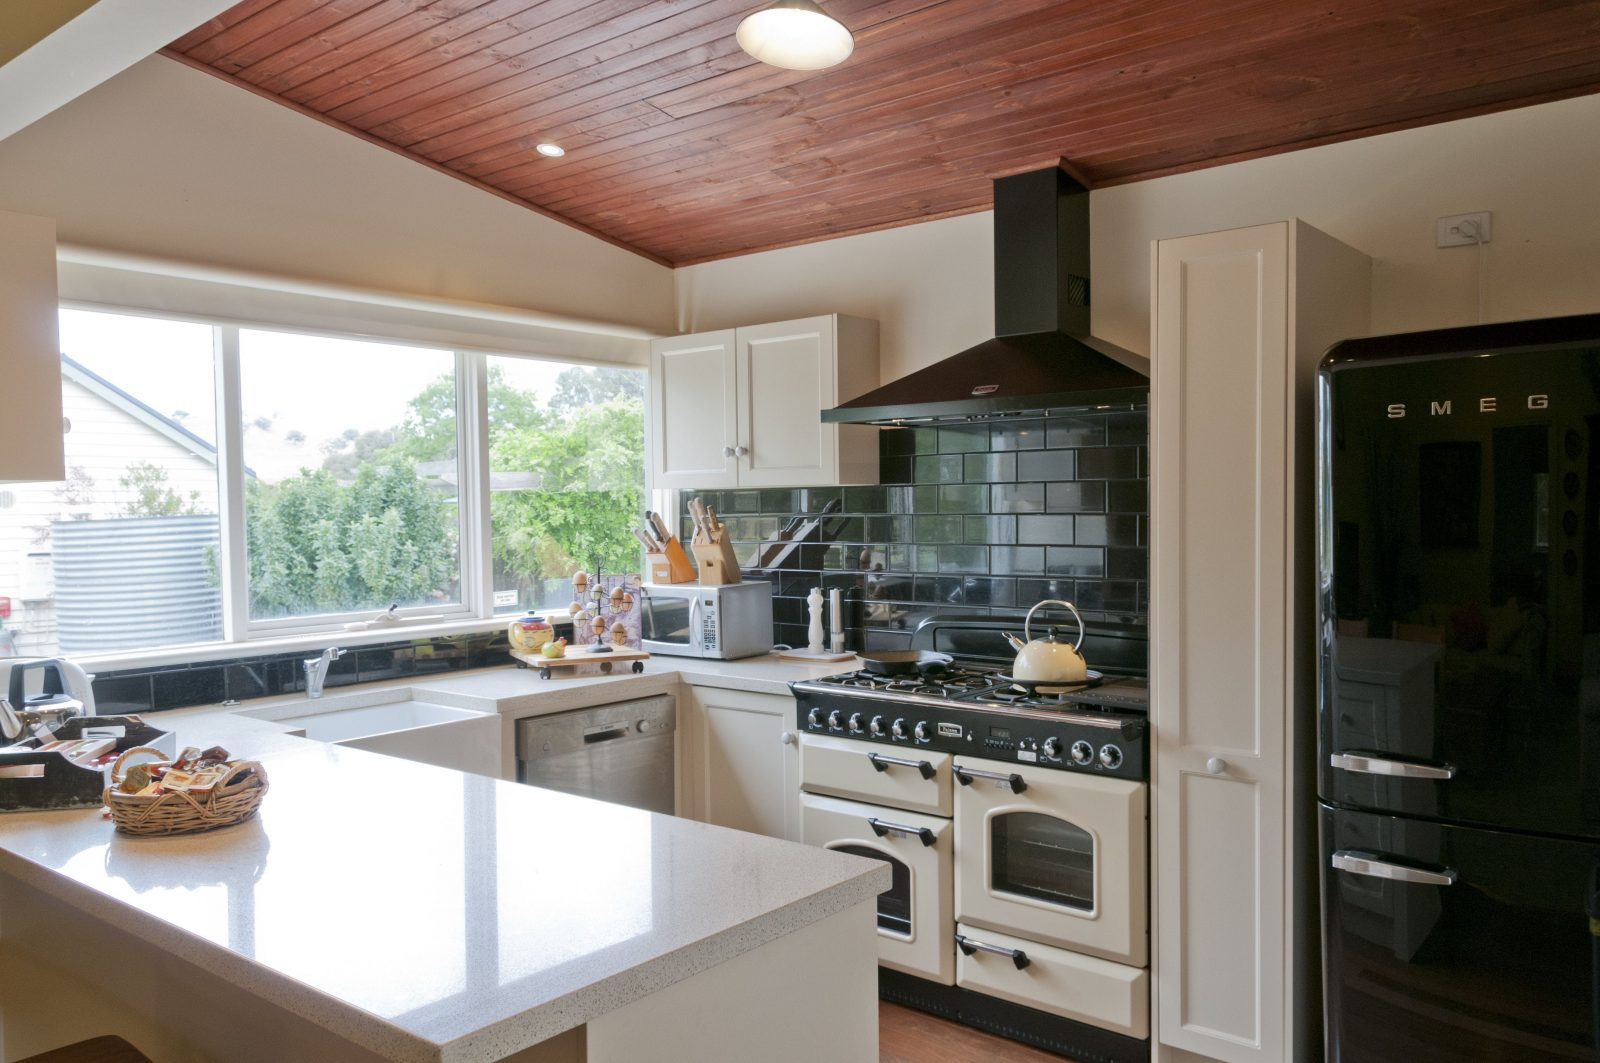 Kitchen with double oven and modern facilitiei